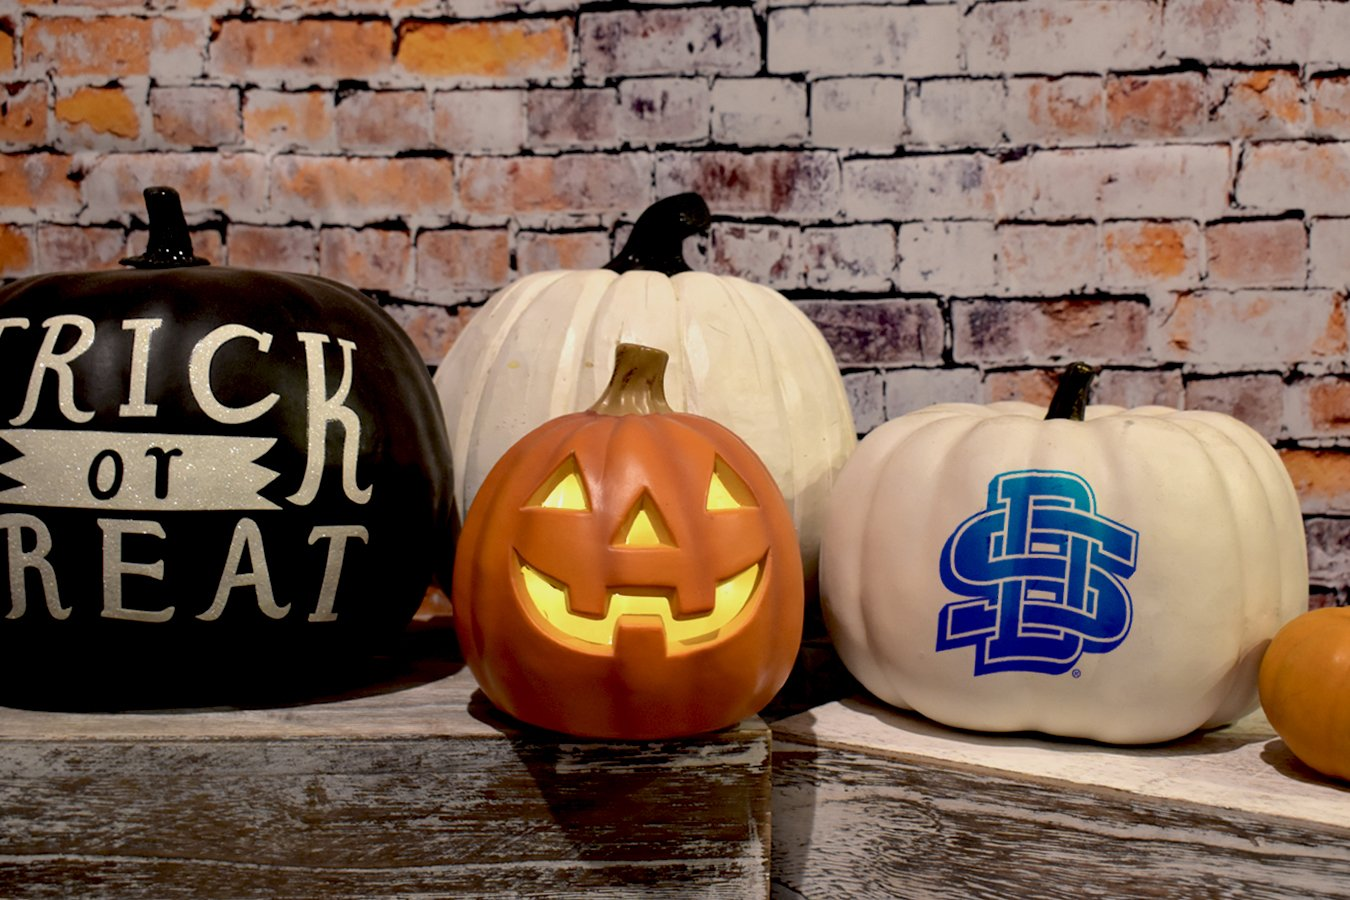 Five Halloween Pumpkins: One says Trick or Treat, One has the SD logo and one has a lit, carved face